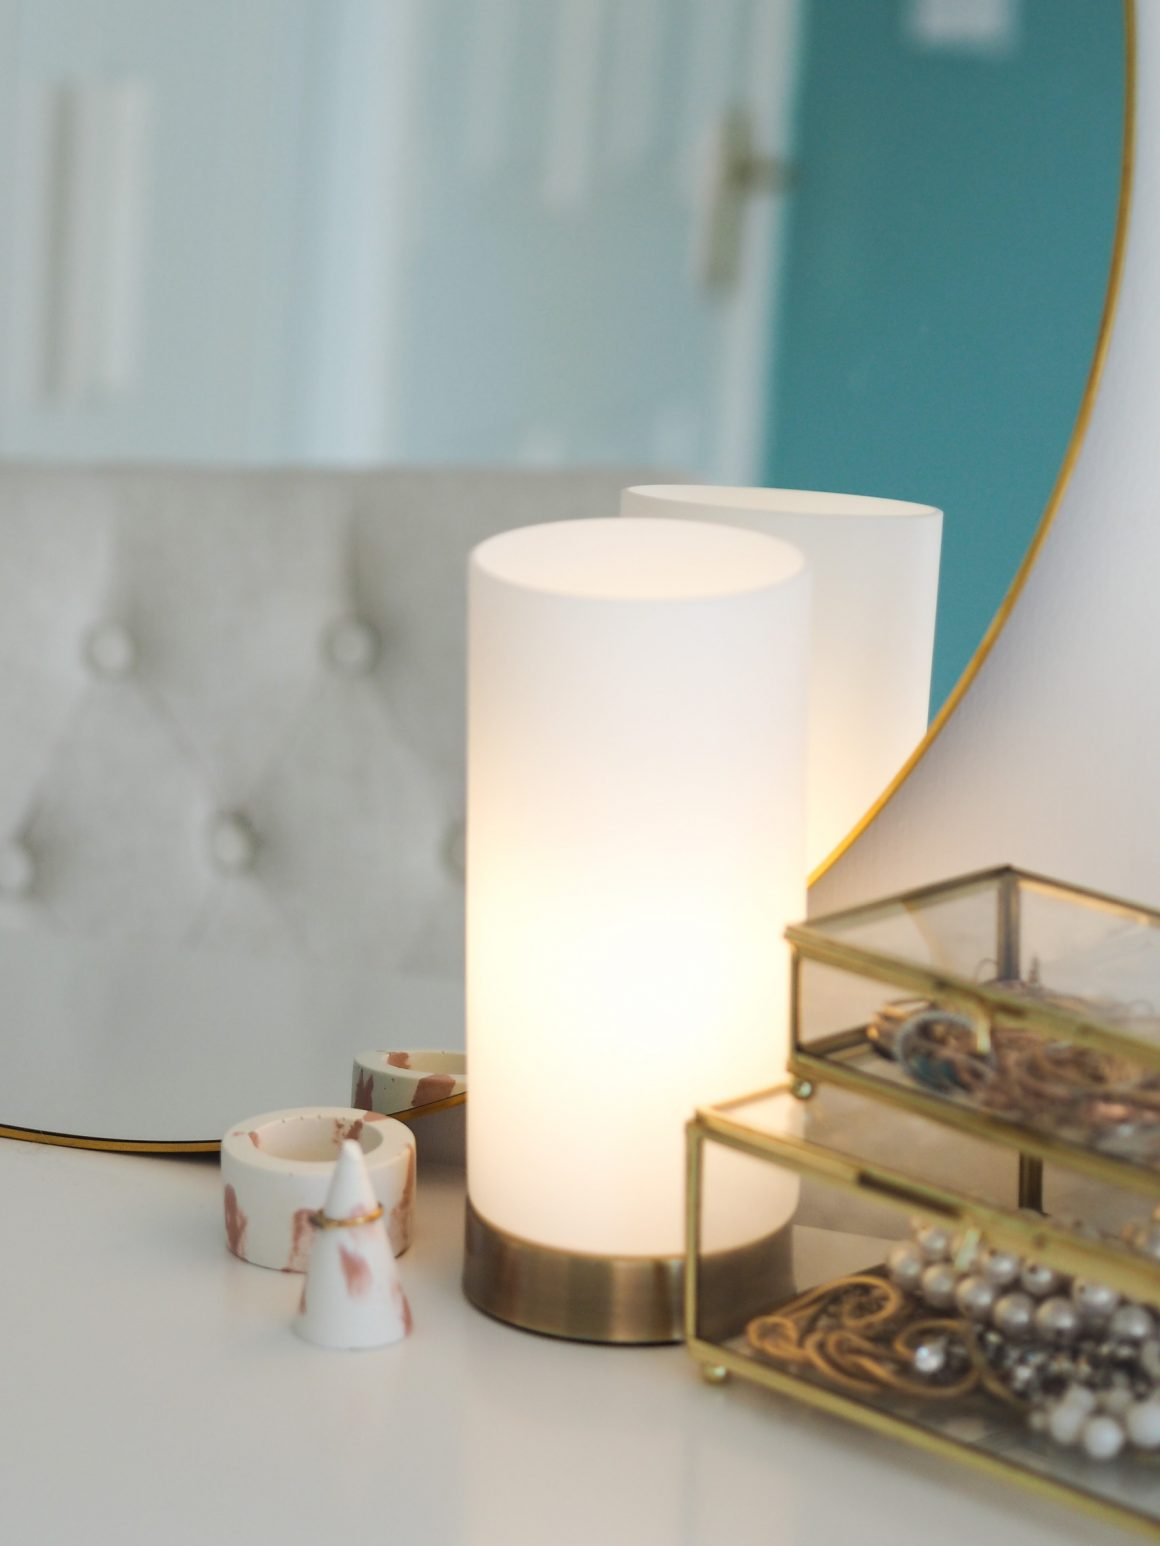 If you're looking to update your home on a budget this season, check out this post where I'm sharing affordable homeware from Studio.